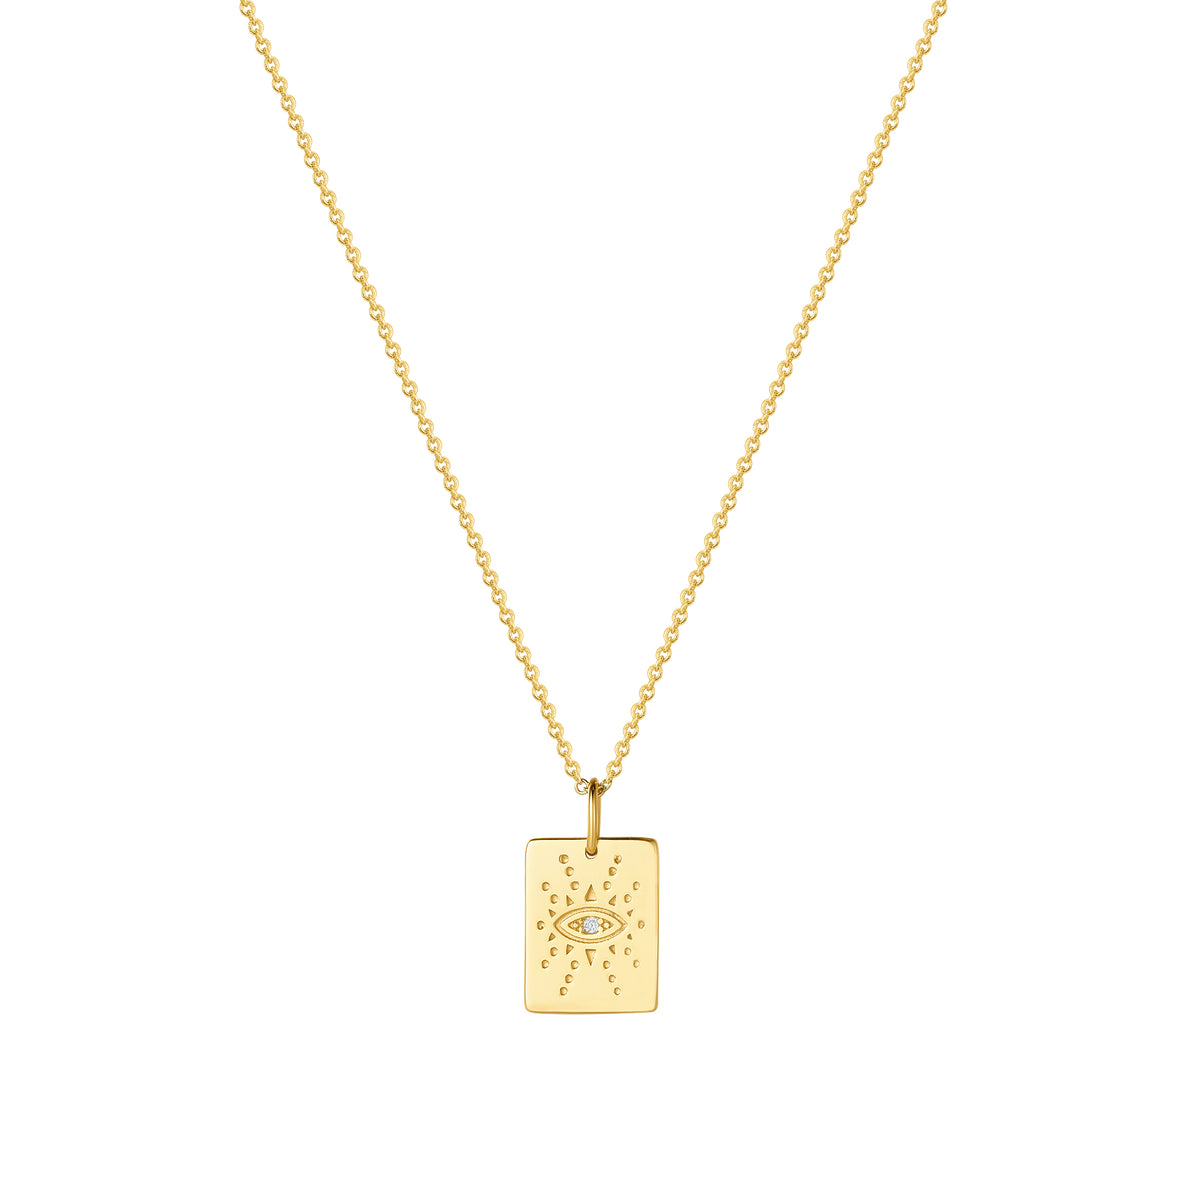 Wish Pendants | Creativity & Confidence Pendant | White CZ | 14K Gold Plated 925 Silver